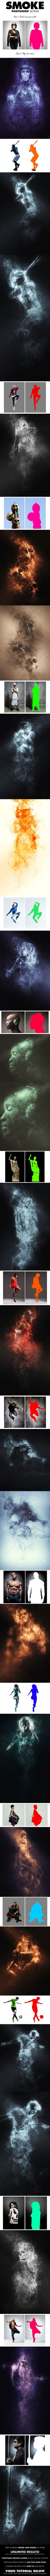 Smoke Photoshop Action - Create awesome smoke effects on your photos with this action. It only takes a few clicks to get setup and gives you a result that if re-created manually, would take hours and hours of work per photo! Everything remains layered giving you great control such as the ability to rotate the lights, move the smoke around, change colors and a whole lot more.